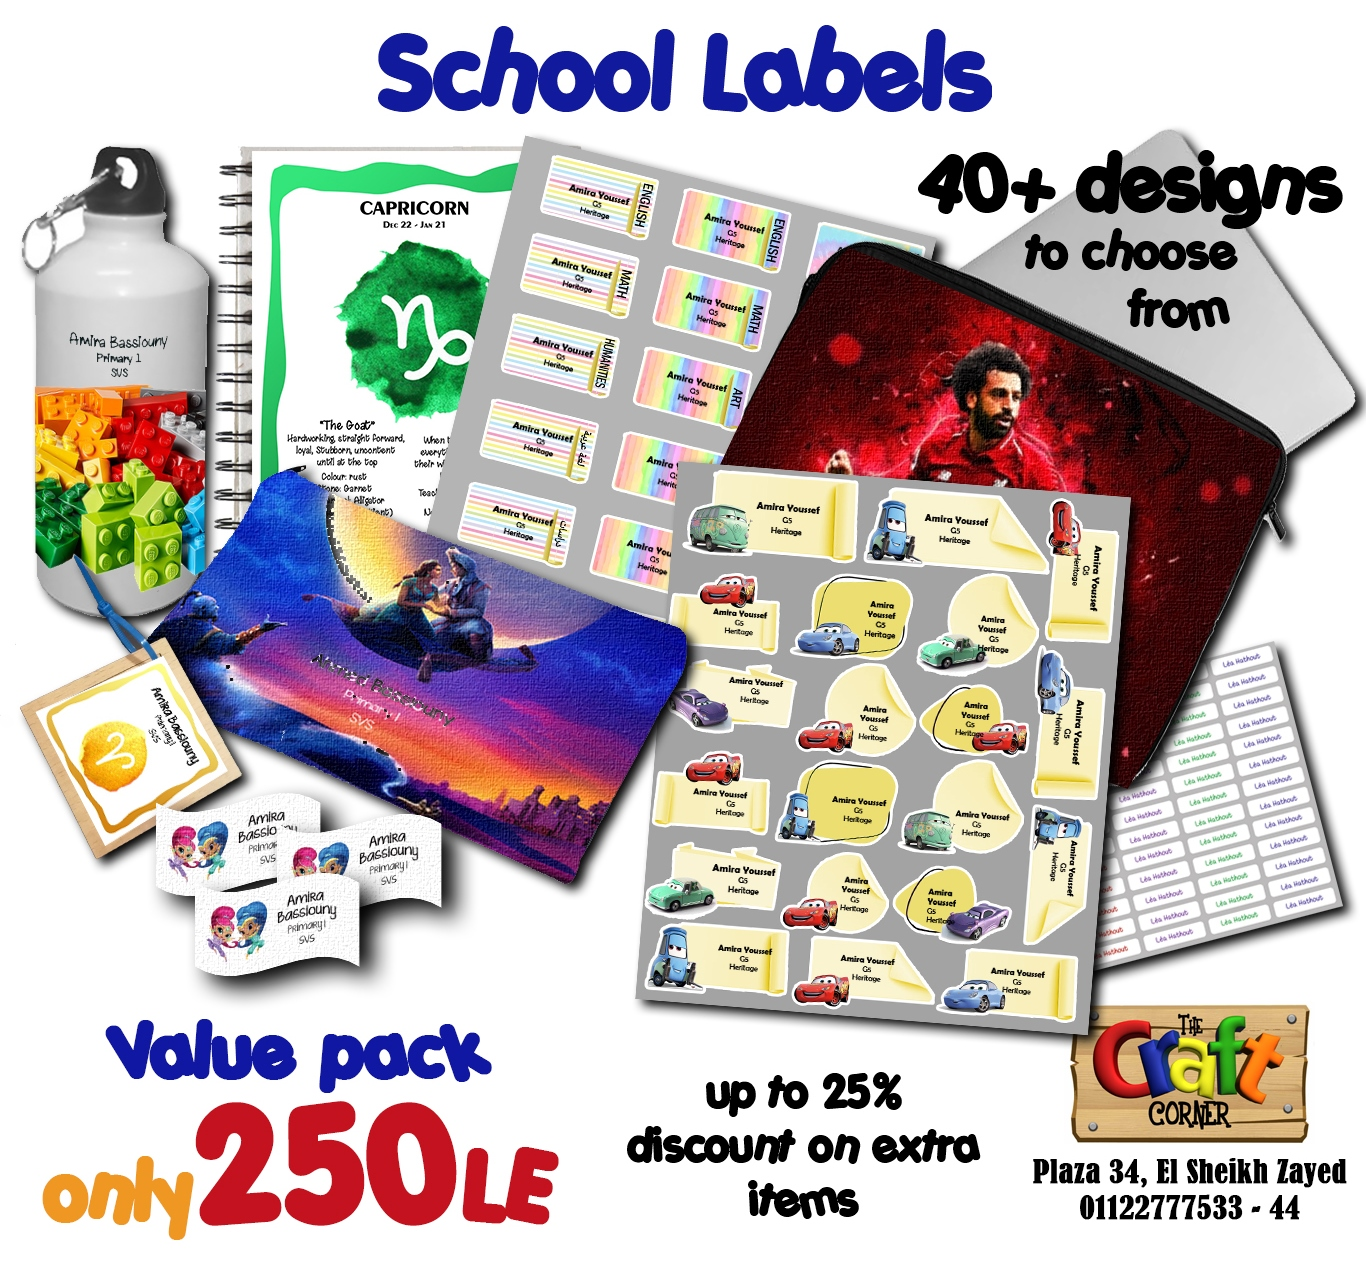 School labels ad